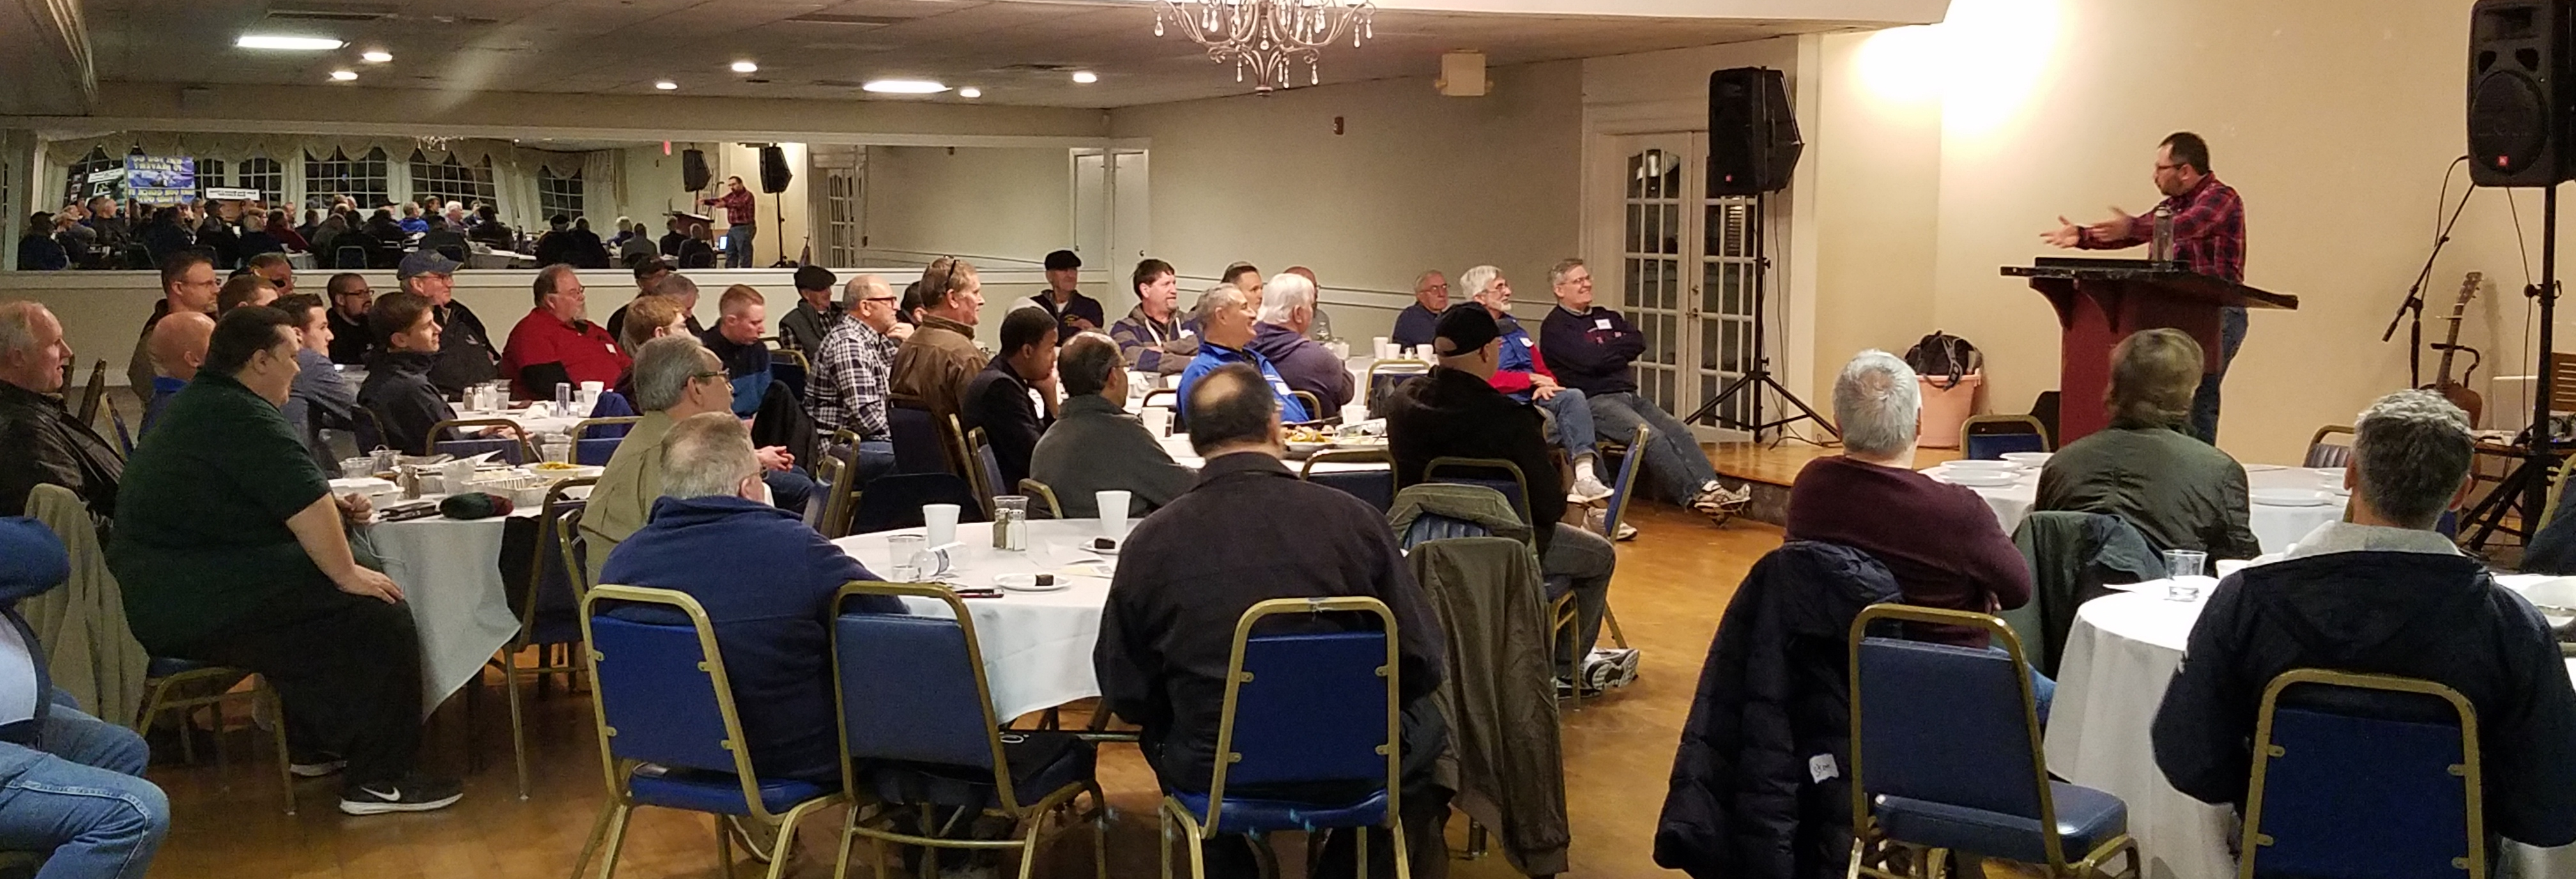 I had the honor to preach to 50+ men at a 'Men's Night Out' event sponsored by Interdenominational Christian Men's Network in Halifax, Massachusetts. This event is meant to be evangelistic - a safe place to bring an unbelieving friend. The text of my message: the book of Hebrews. The message: Jesus is Greater. Greater than what? Jesus is absolutely greater than anything. And when we grasp that, our life will never be the same. Praise God! FYI, the ICMN gets speakers like Josh McDowell and the Chaplain for the New England Patriots, so I'm not sure how I got to be invited.  But I'm glad I was. :)